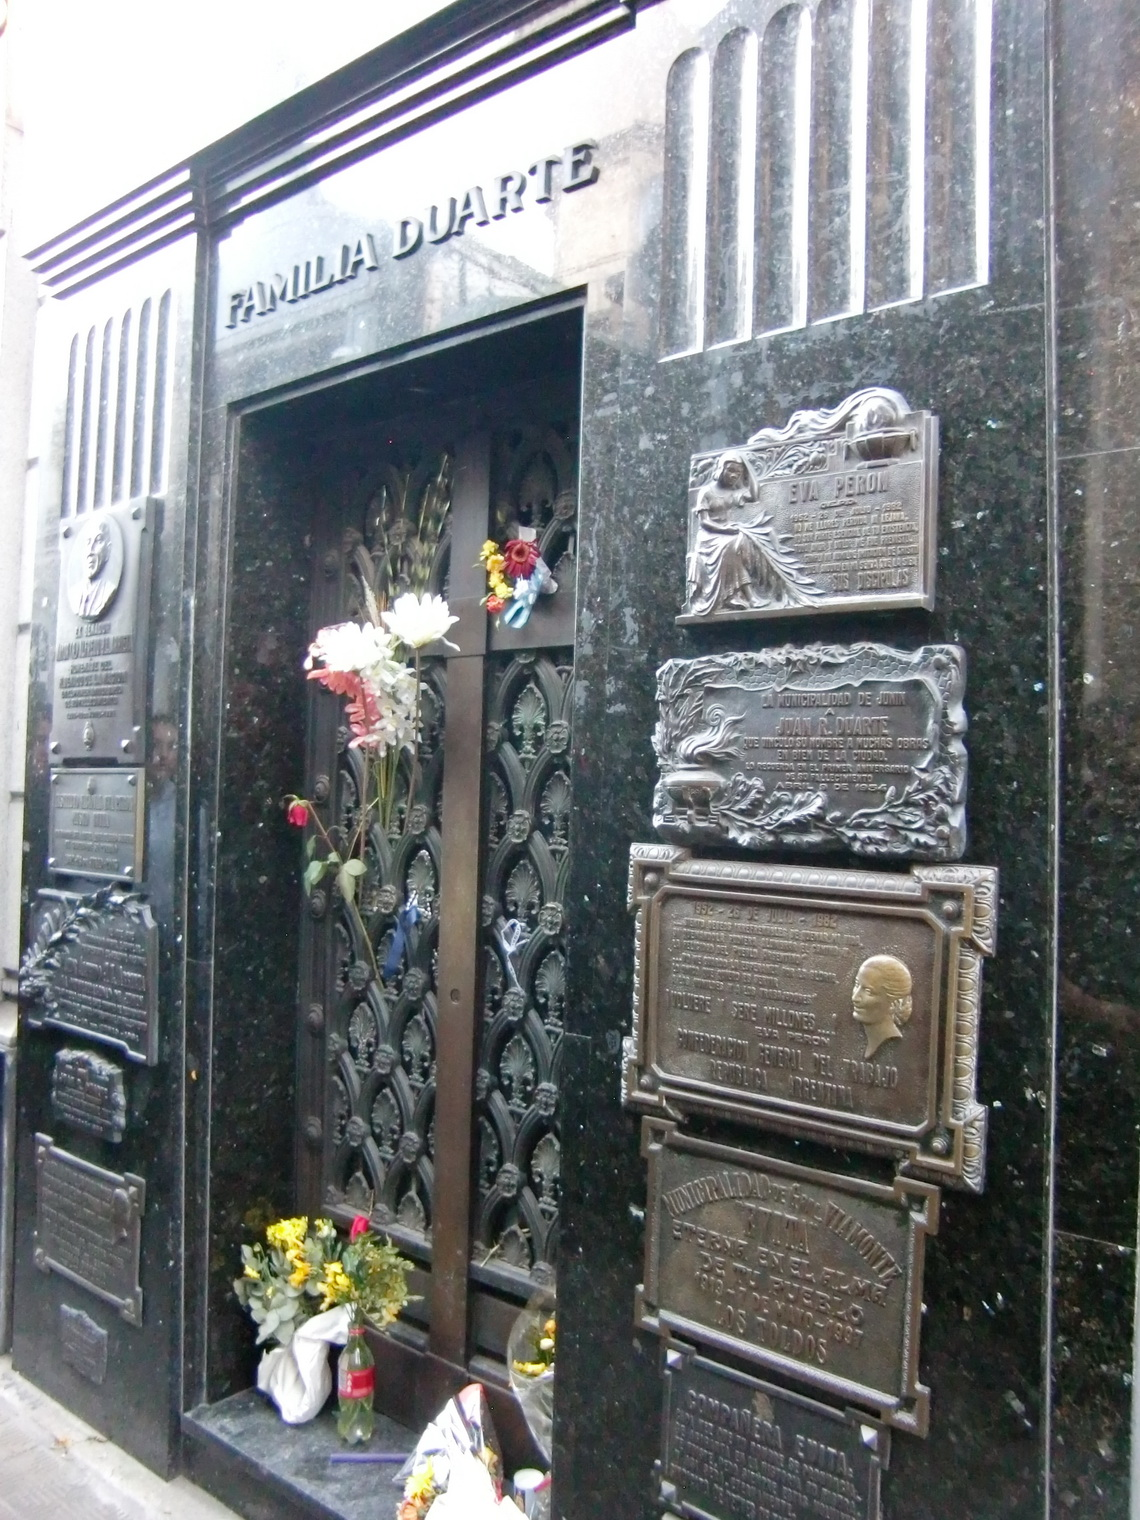 Tomb of the family Duarte - Evita is a born Duarte